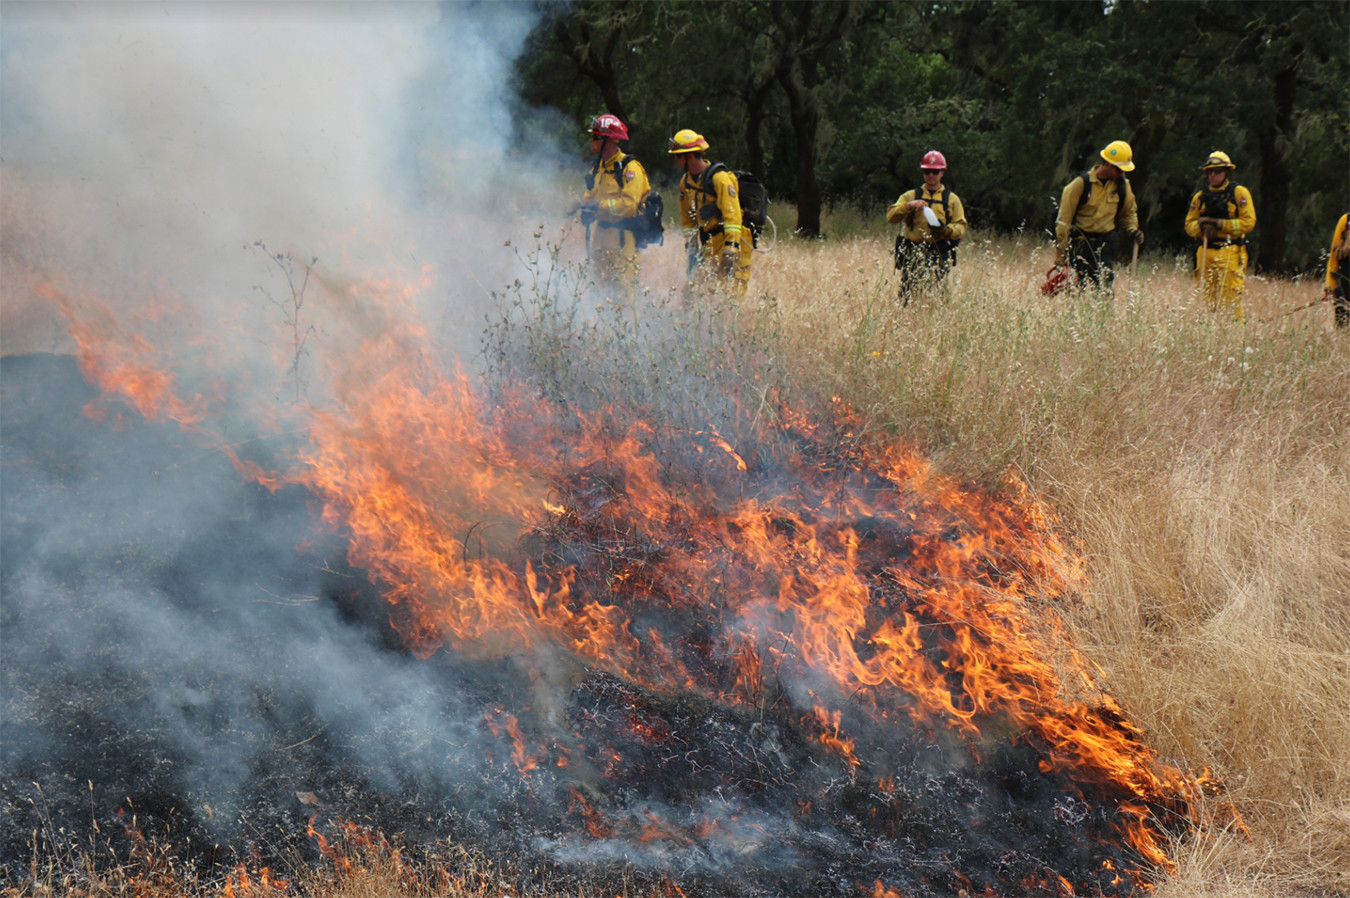 Controlled burning at Sonoma Valley Regional Park June 2019